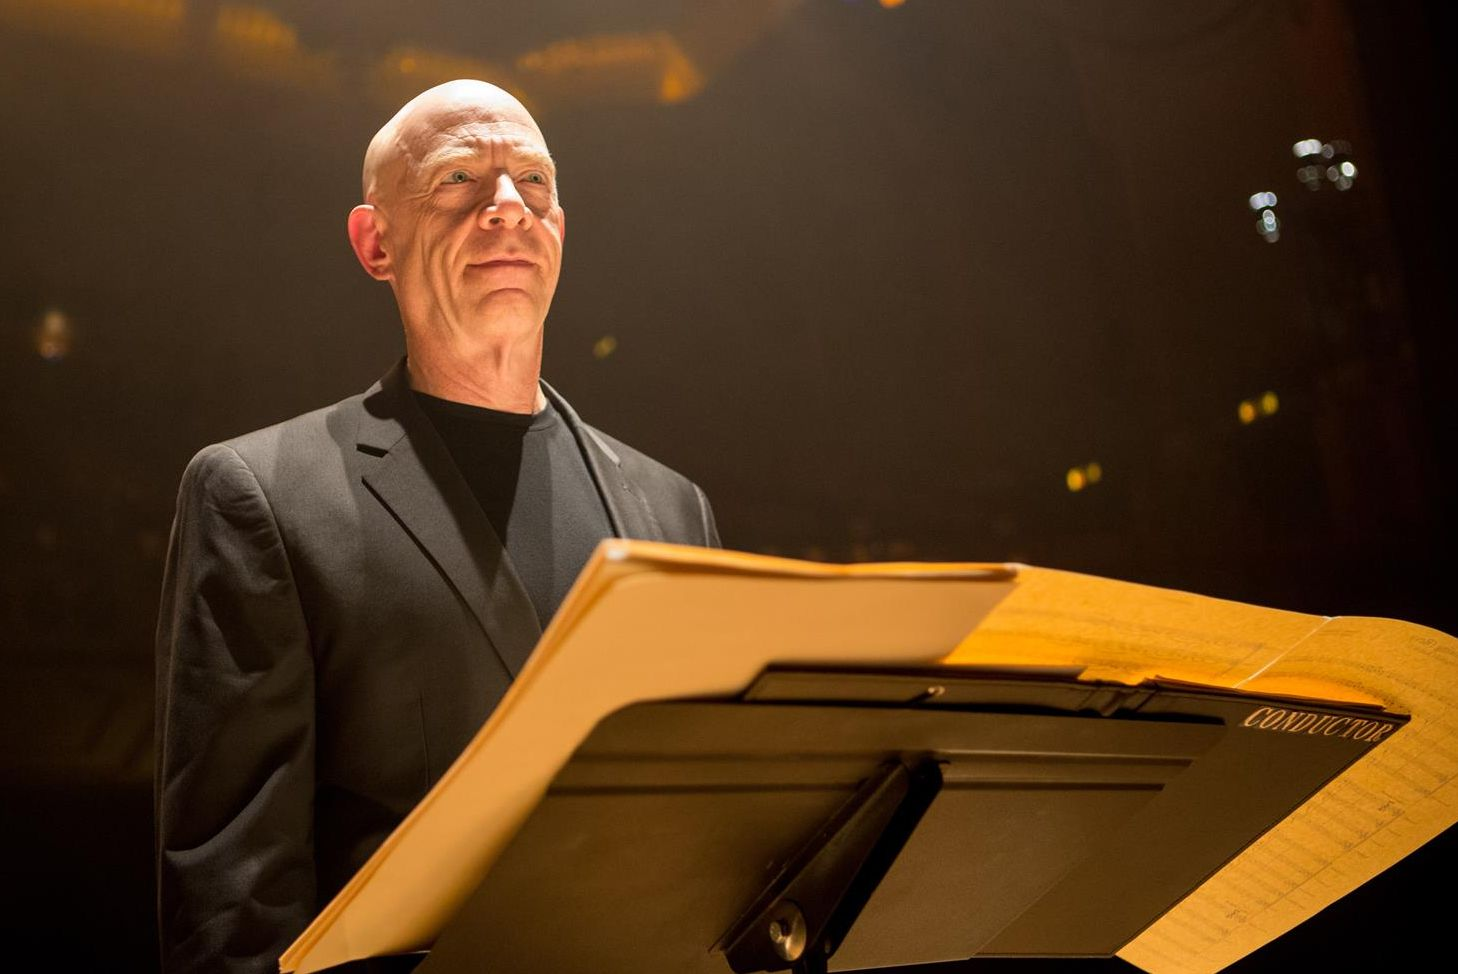 J.K. Simmons as evil conductor Terence Fletcher